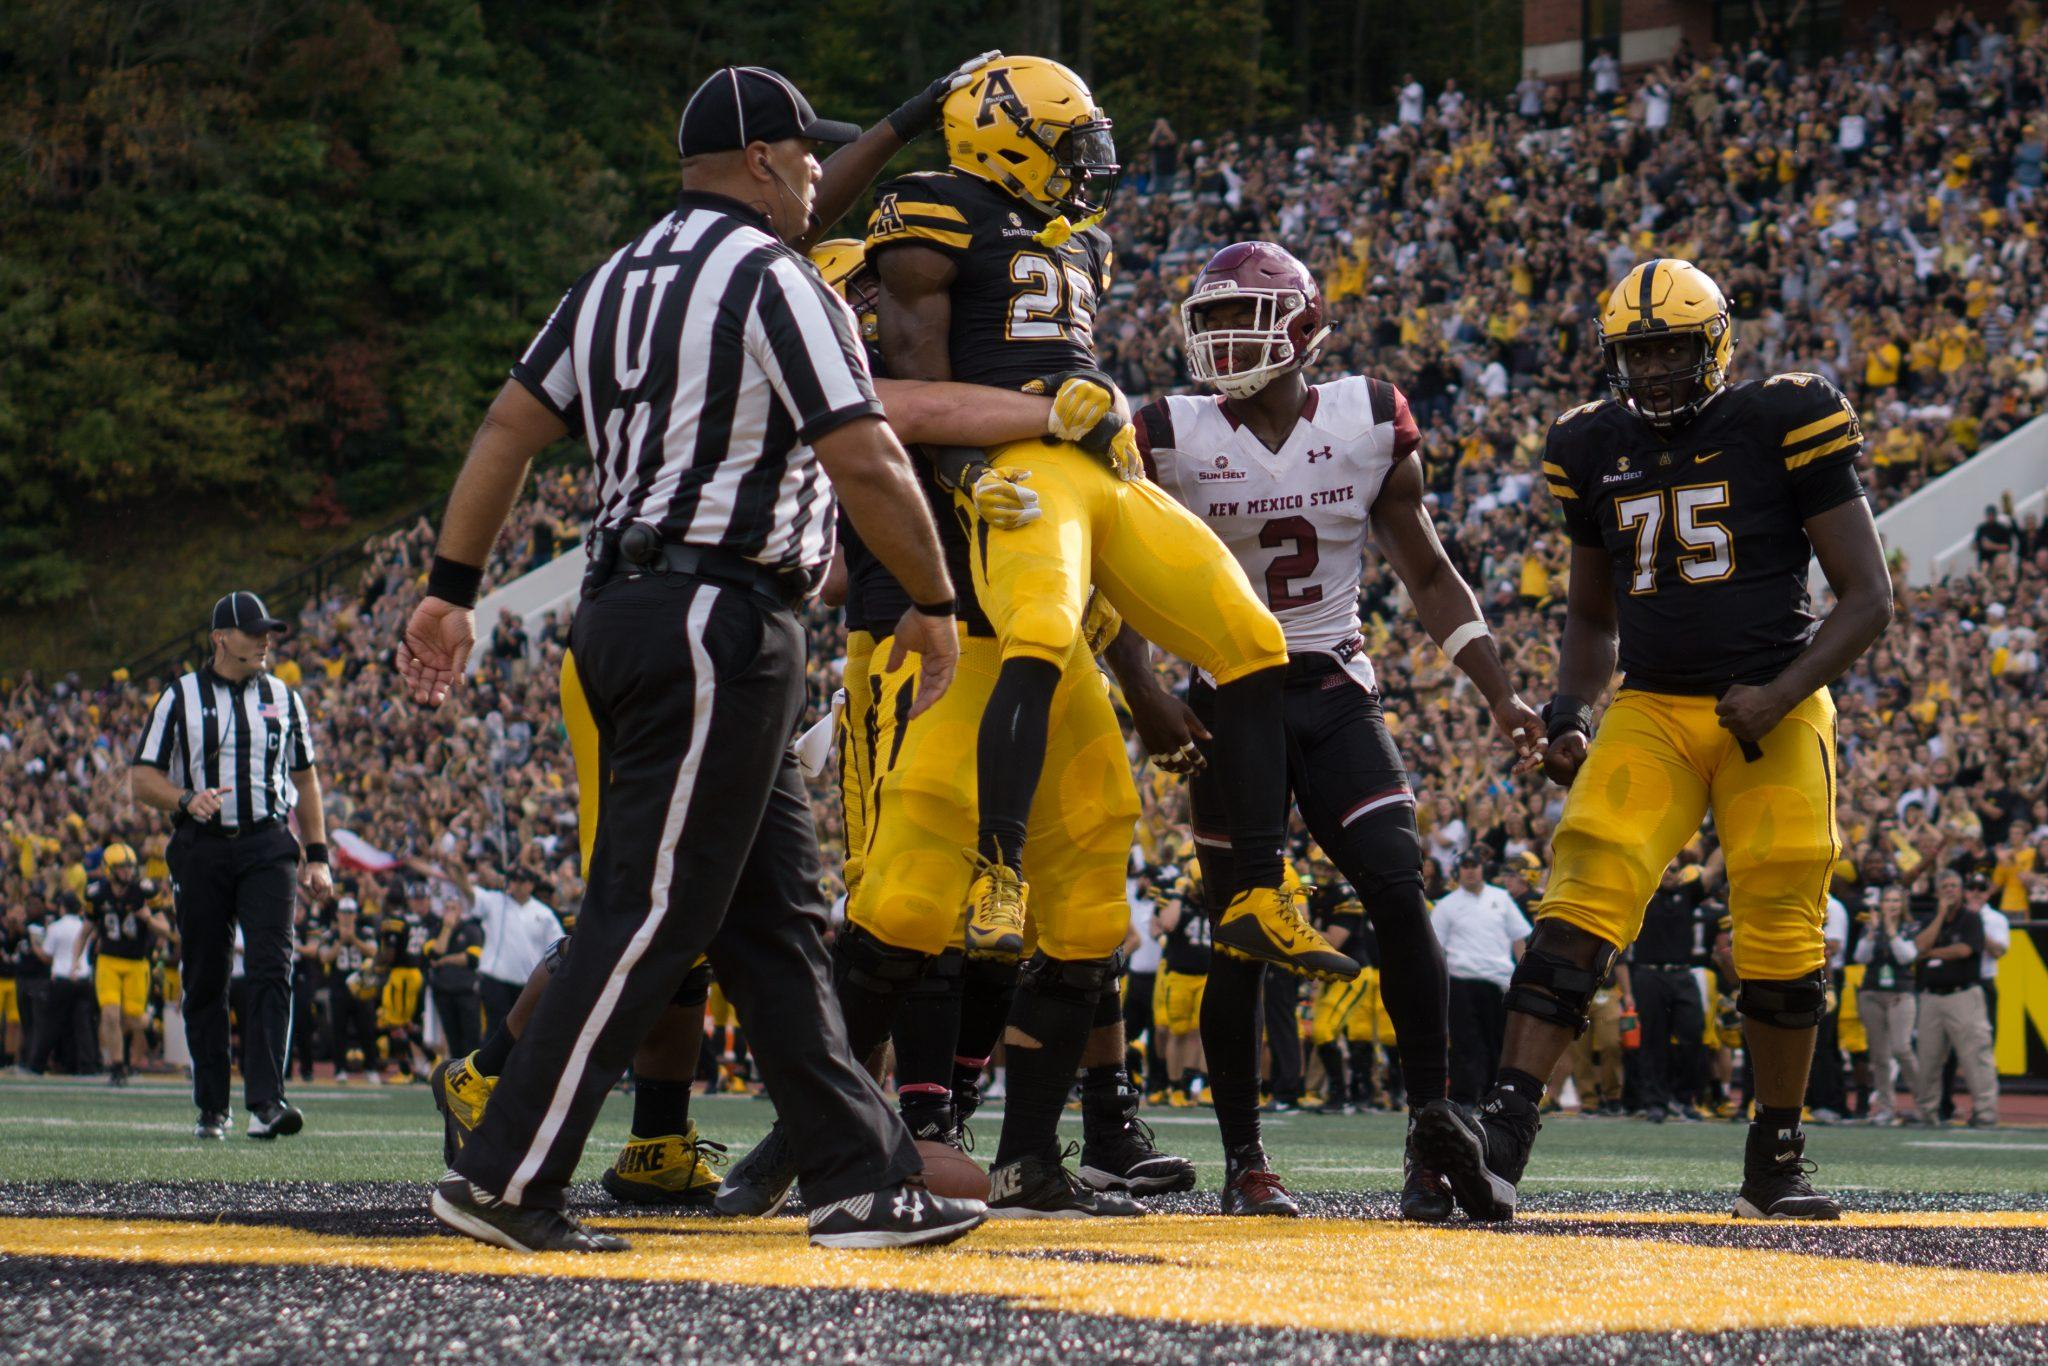 Jalin Moore celebrating with teammates after one of his two touchdowns on the day